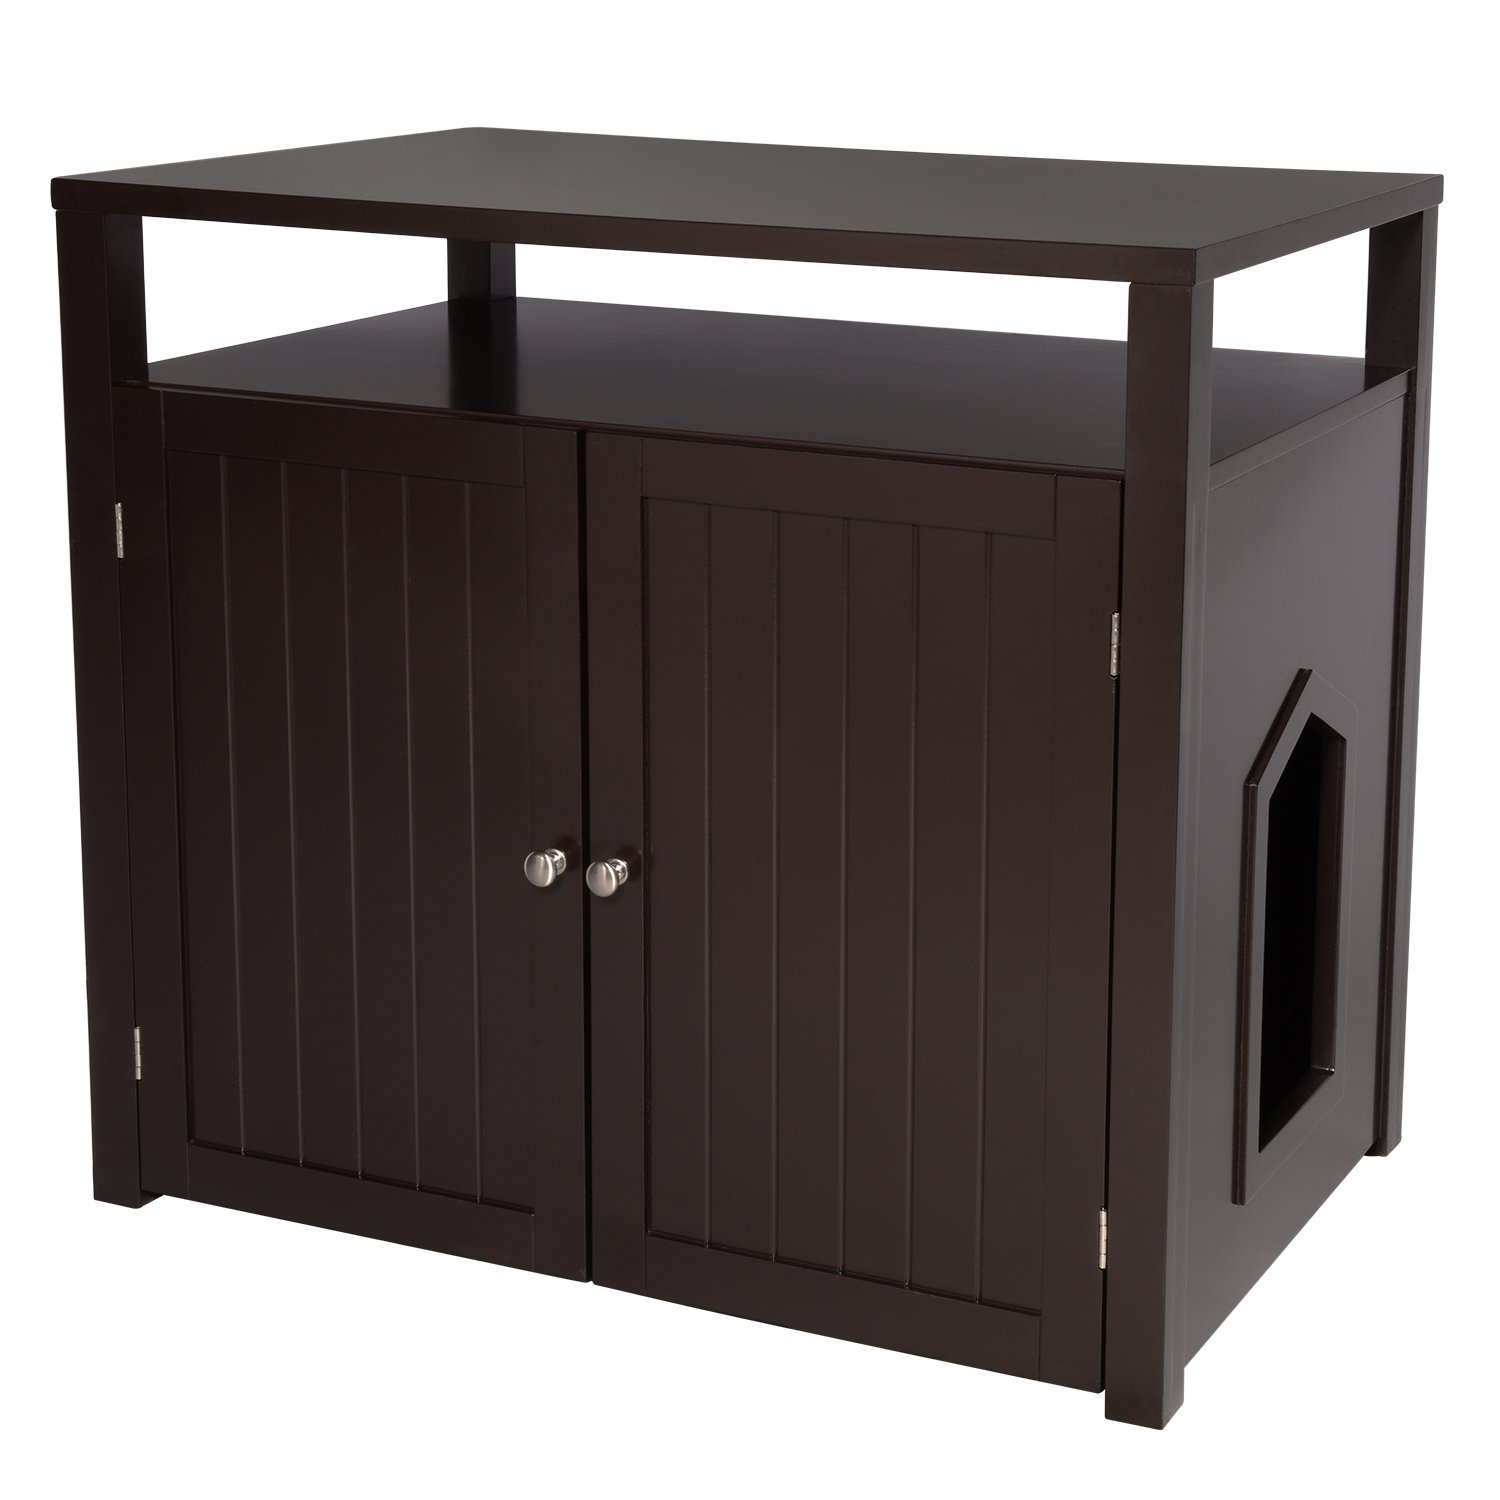 Arf Pets Cat Litter Box Enclosure, Furniture Large Box House with Table by Arf Pets